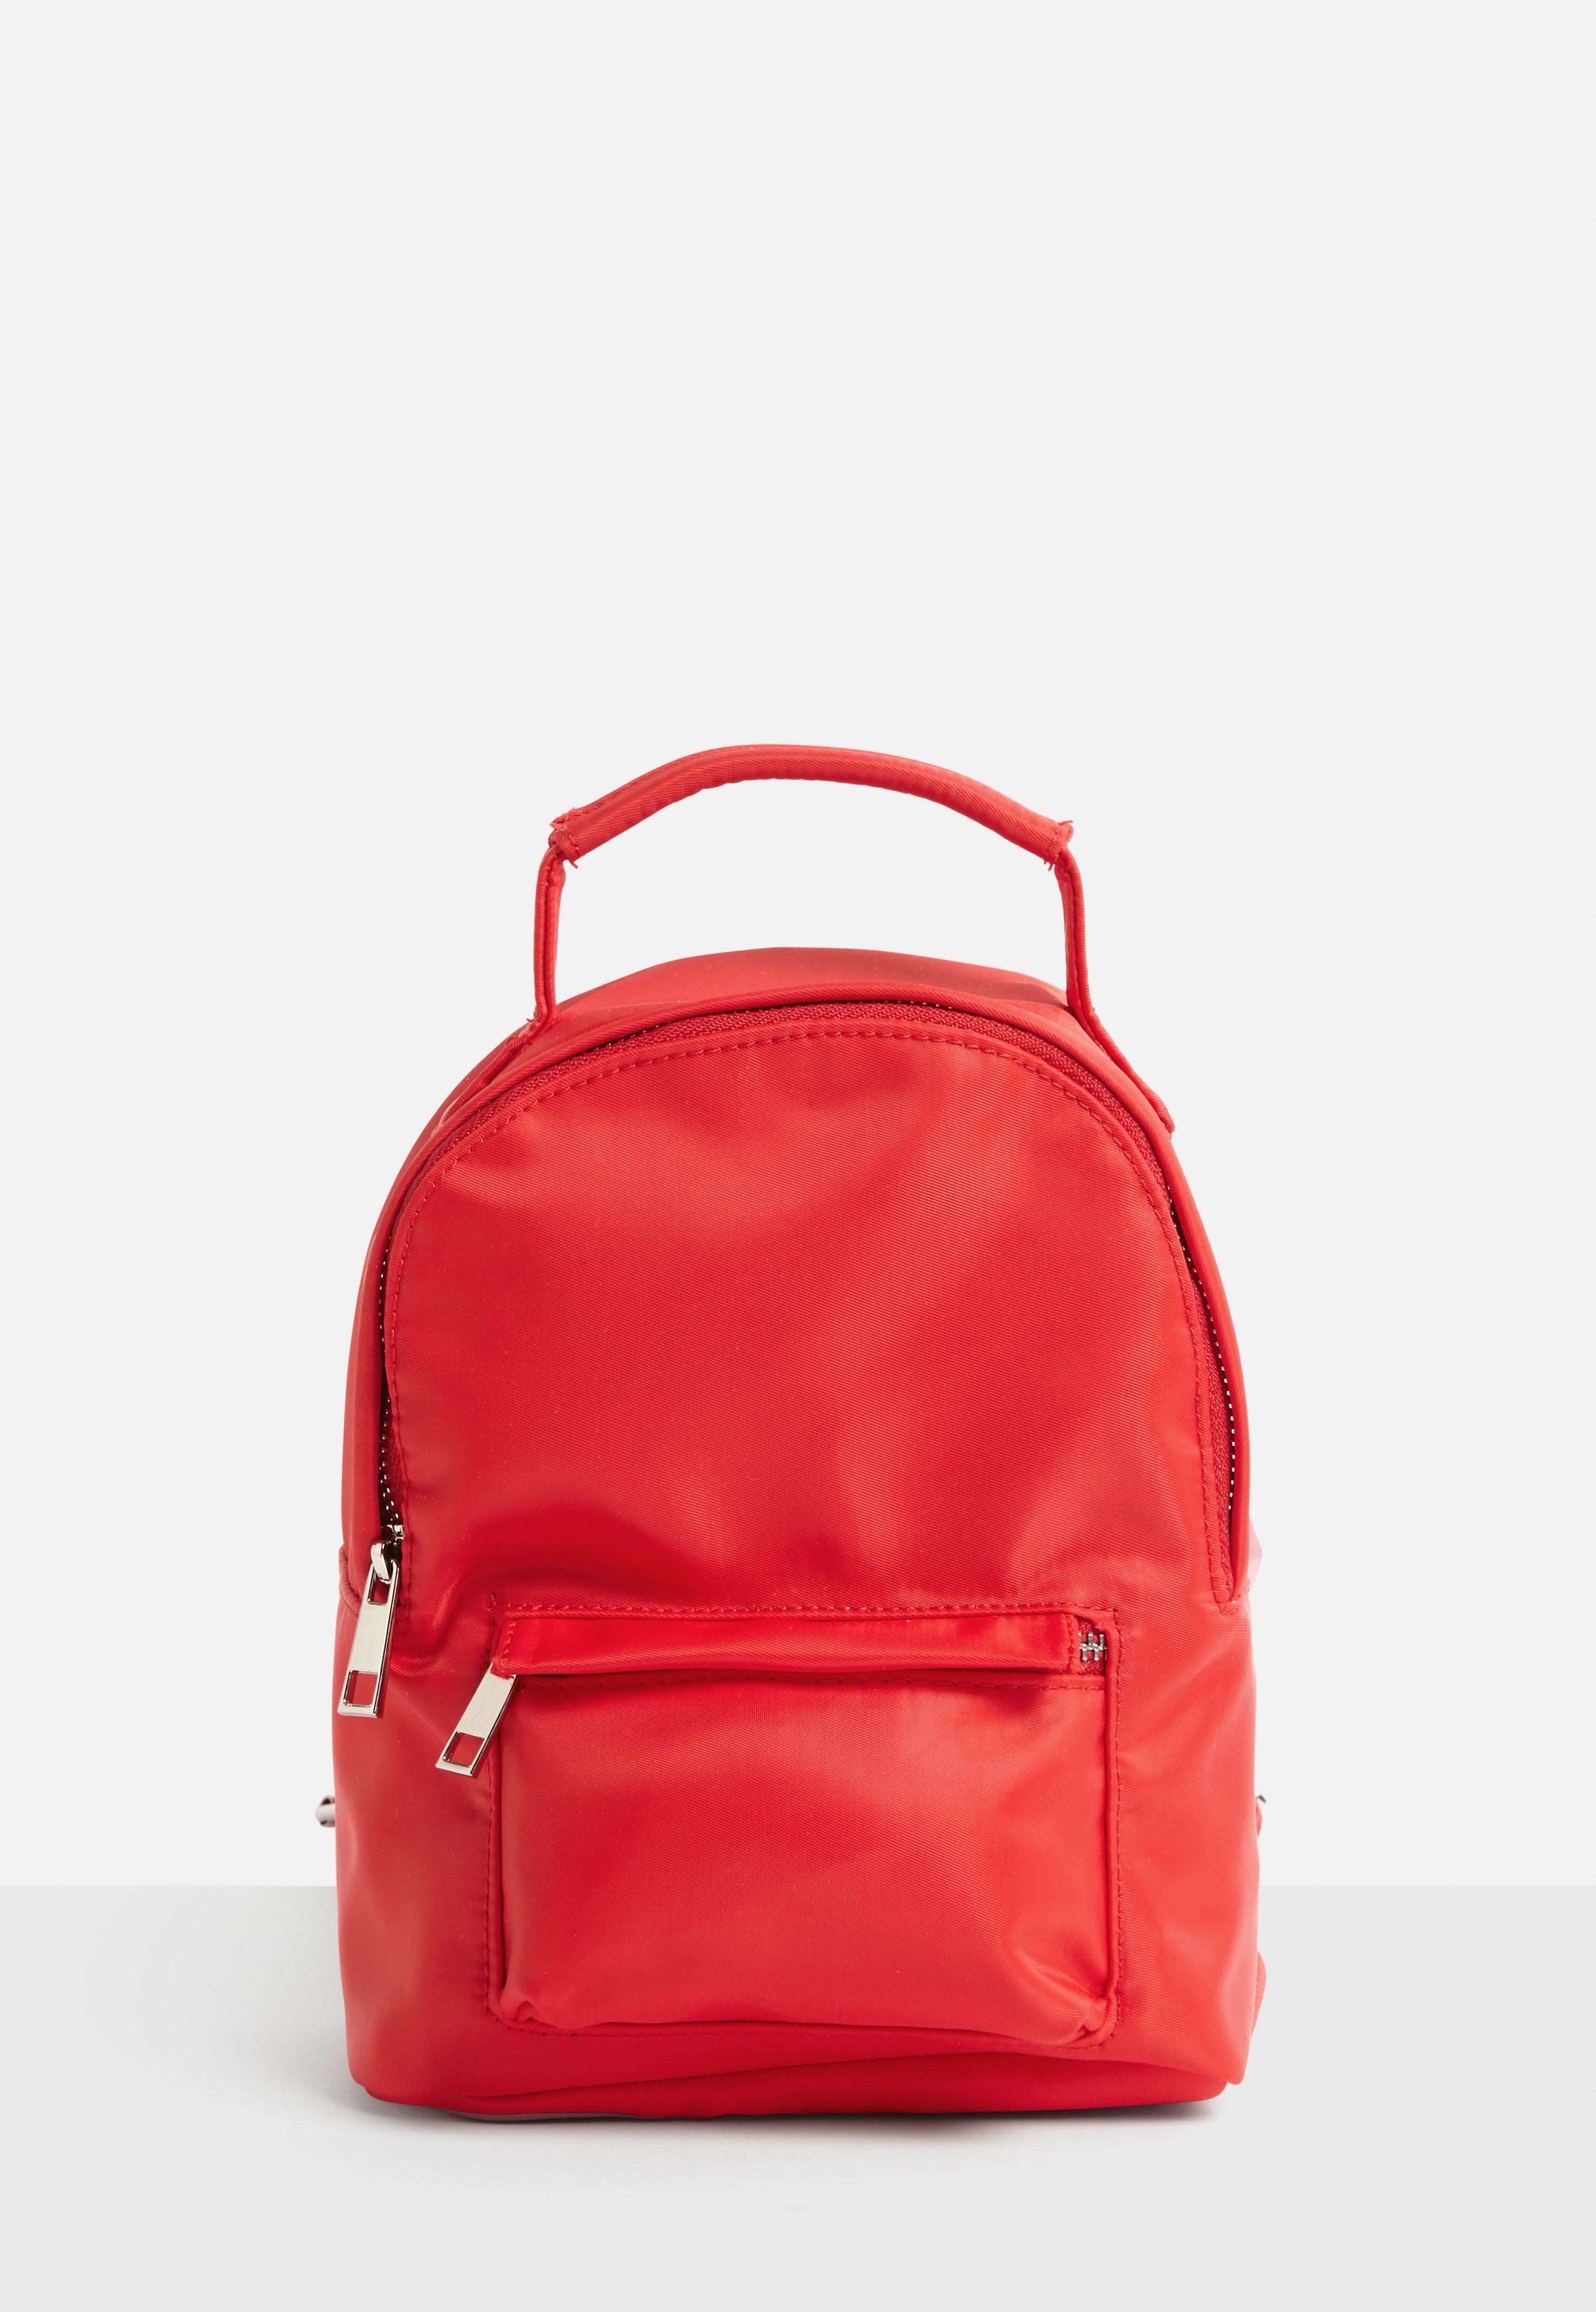 b6e4d07d48 Lyst - Missguided Red Mini Backpack in Red